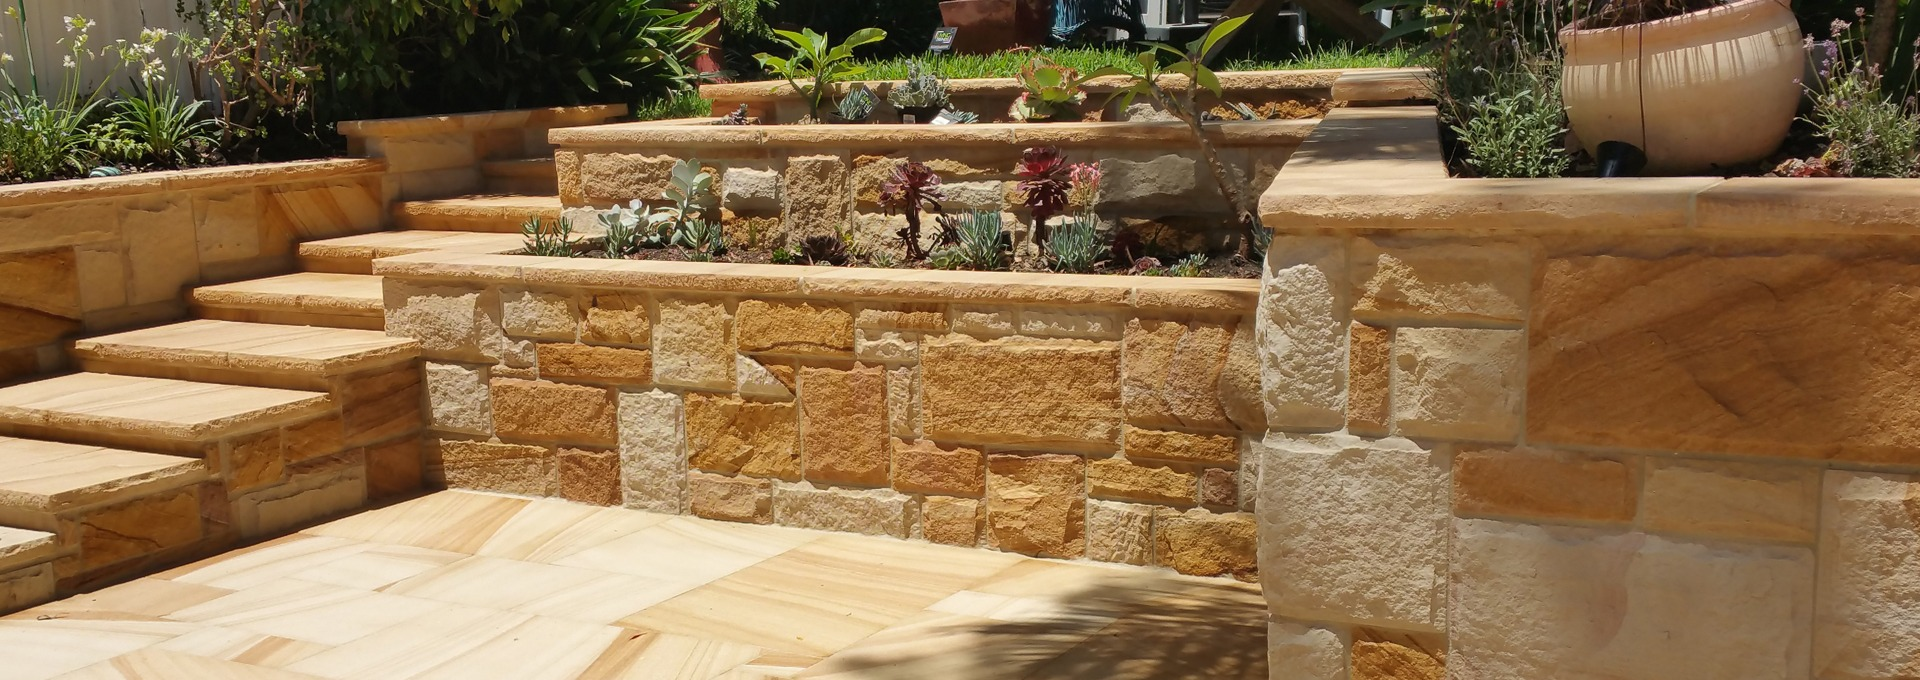 sandstone cleaning and sealing by enviro clean